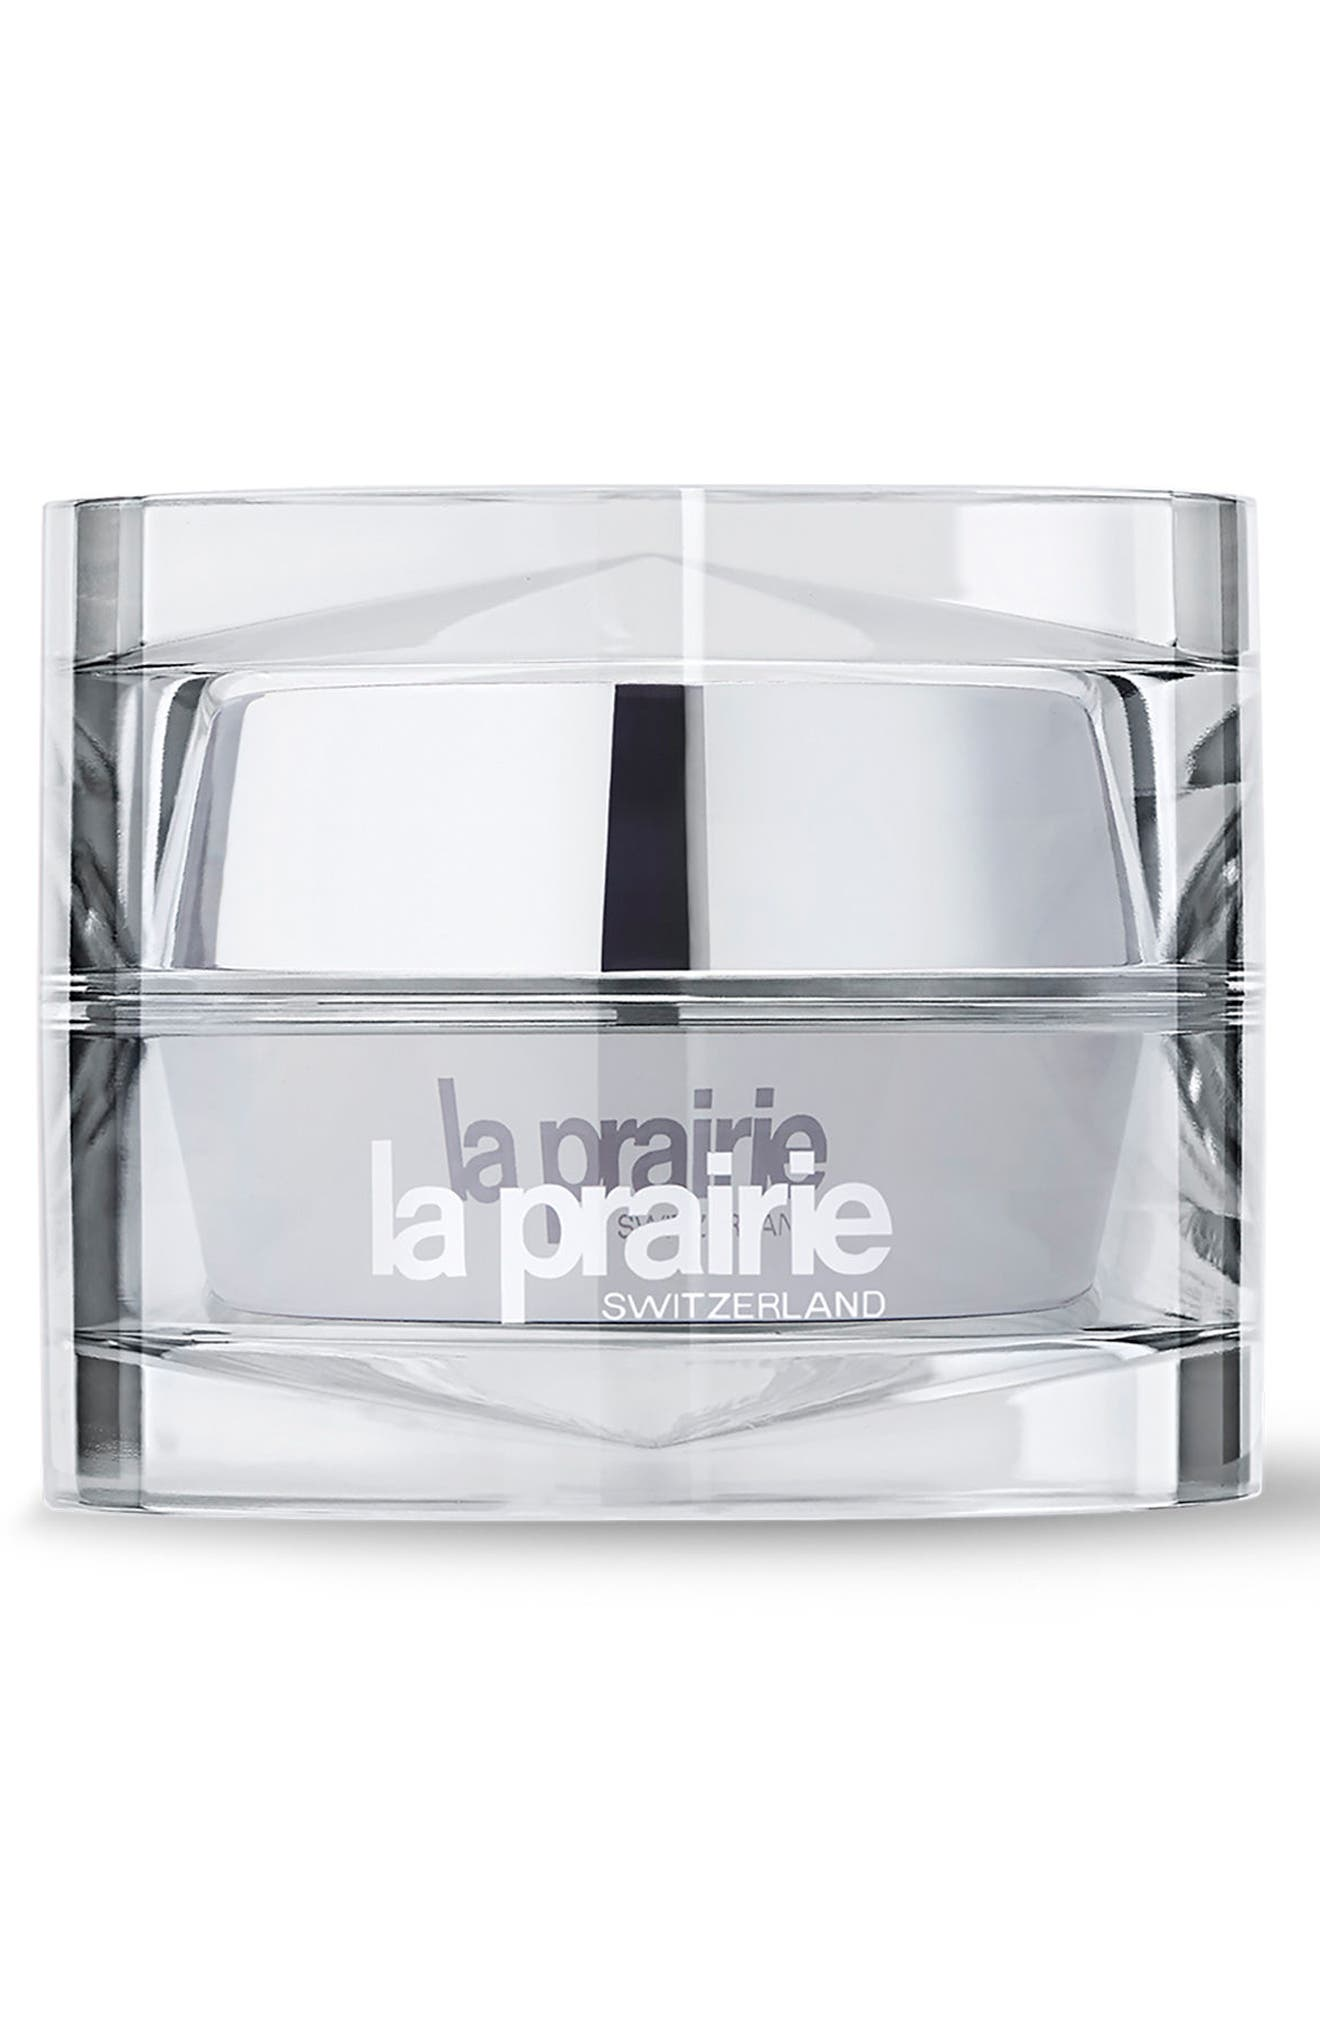 Alternate Image 1 Selected - La Prairie Cellular Eye Cream Platinum Rare